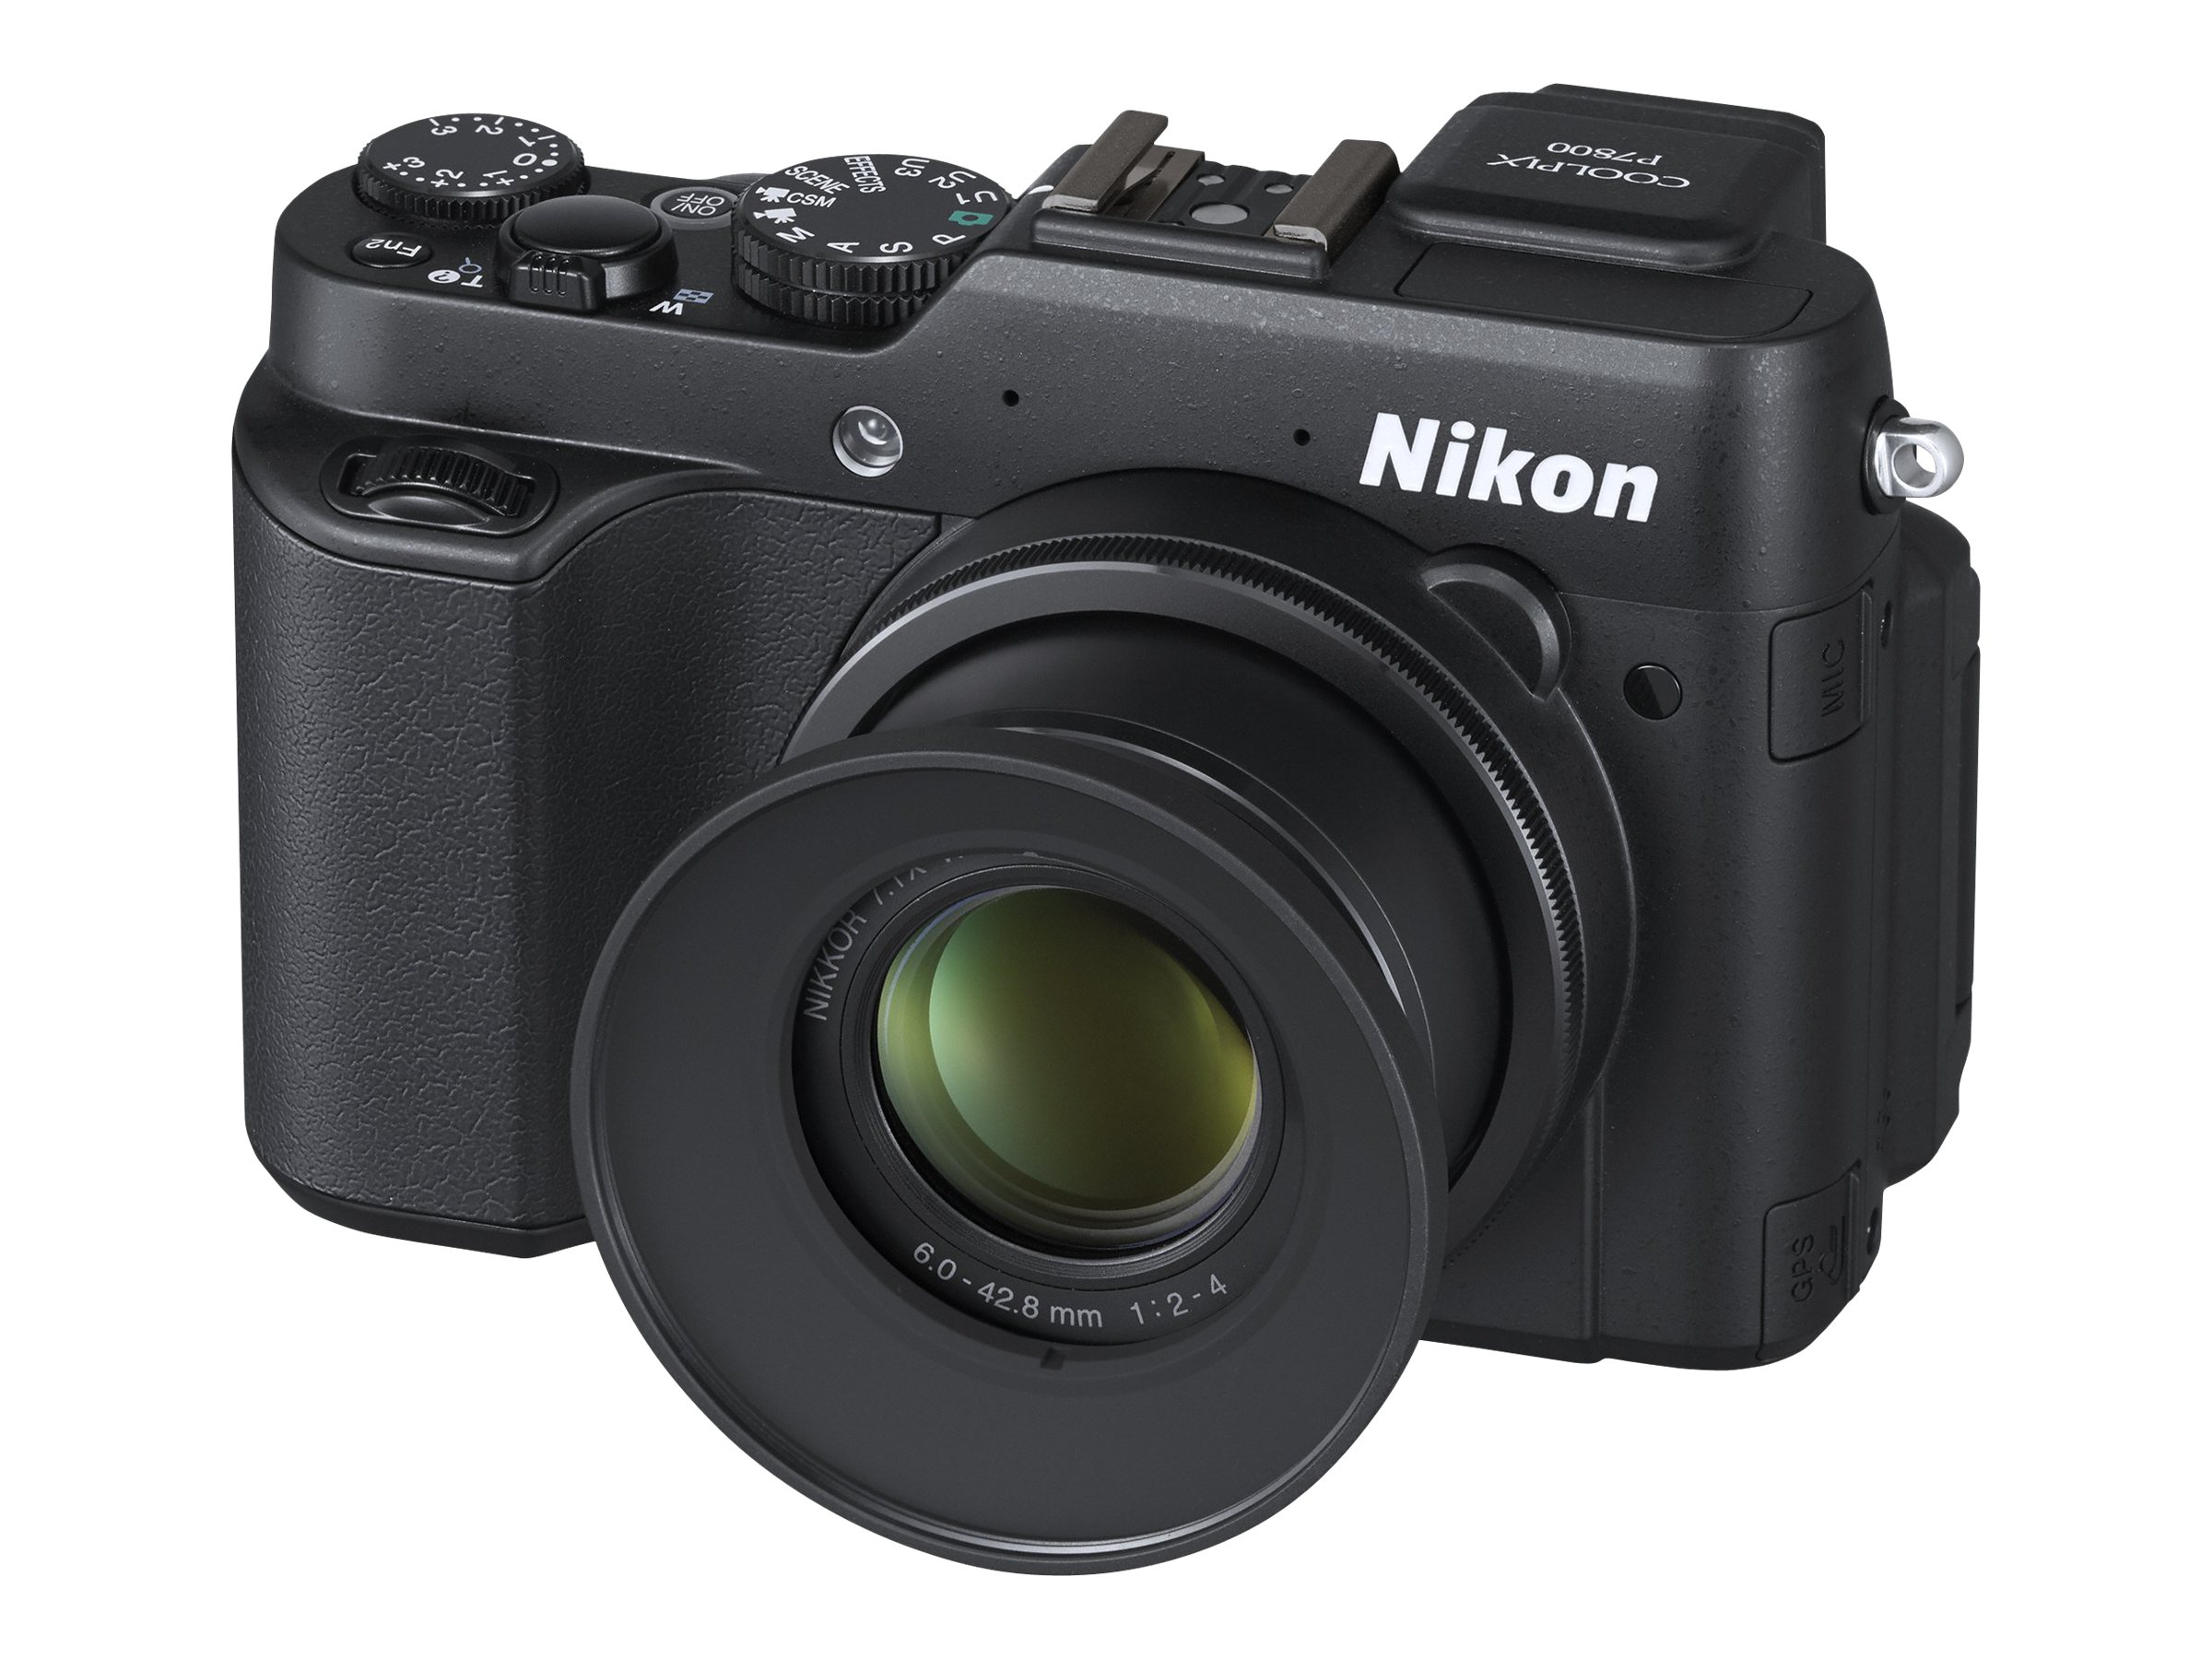 Nikon Coolpix P7800 Black 12.2MP 3 LCD, 26427, 16223495, Cameras - Digital - Point & Shoot